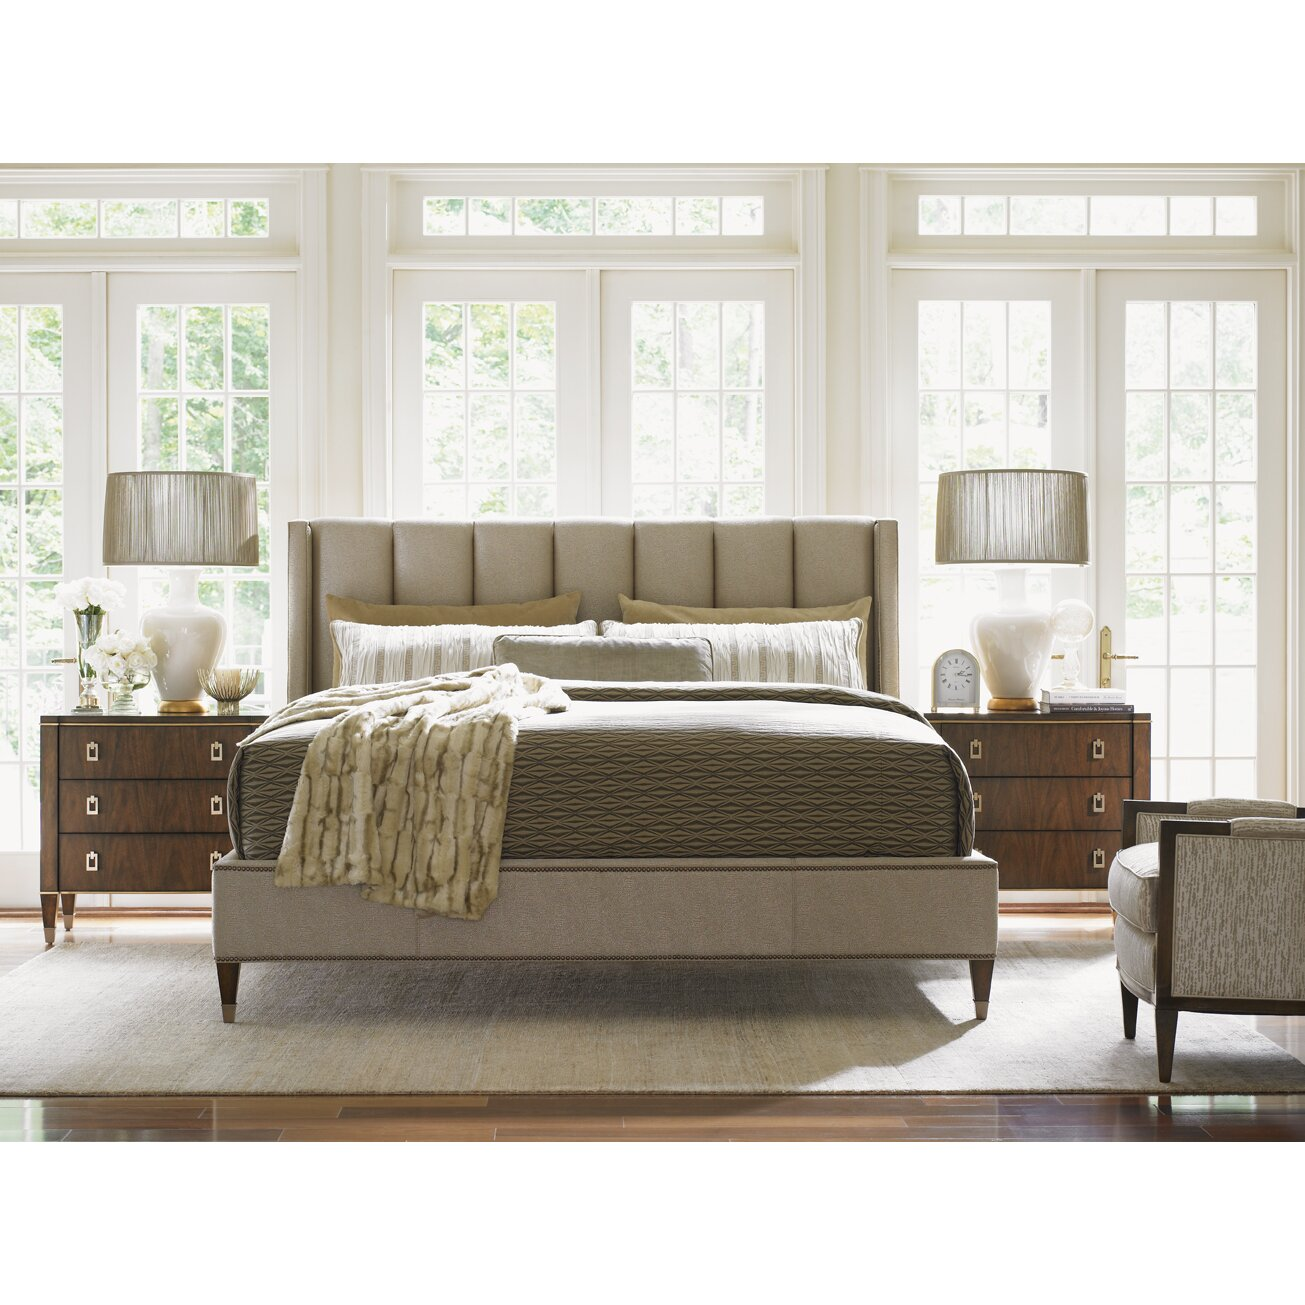 Lexington Bedroom Furniture Lexington Tower Place Upholstered Panel Bed Reviews Wayfair